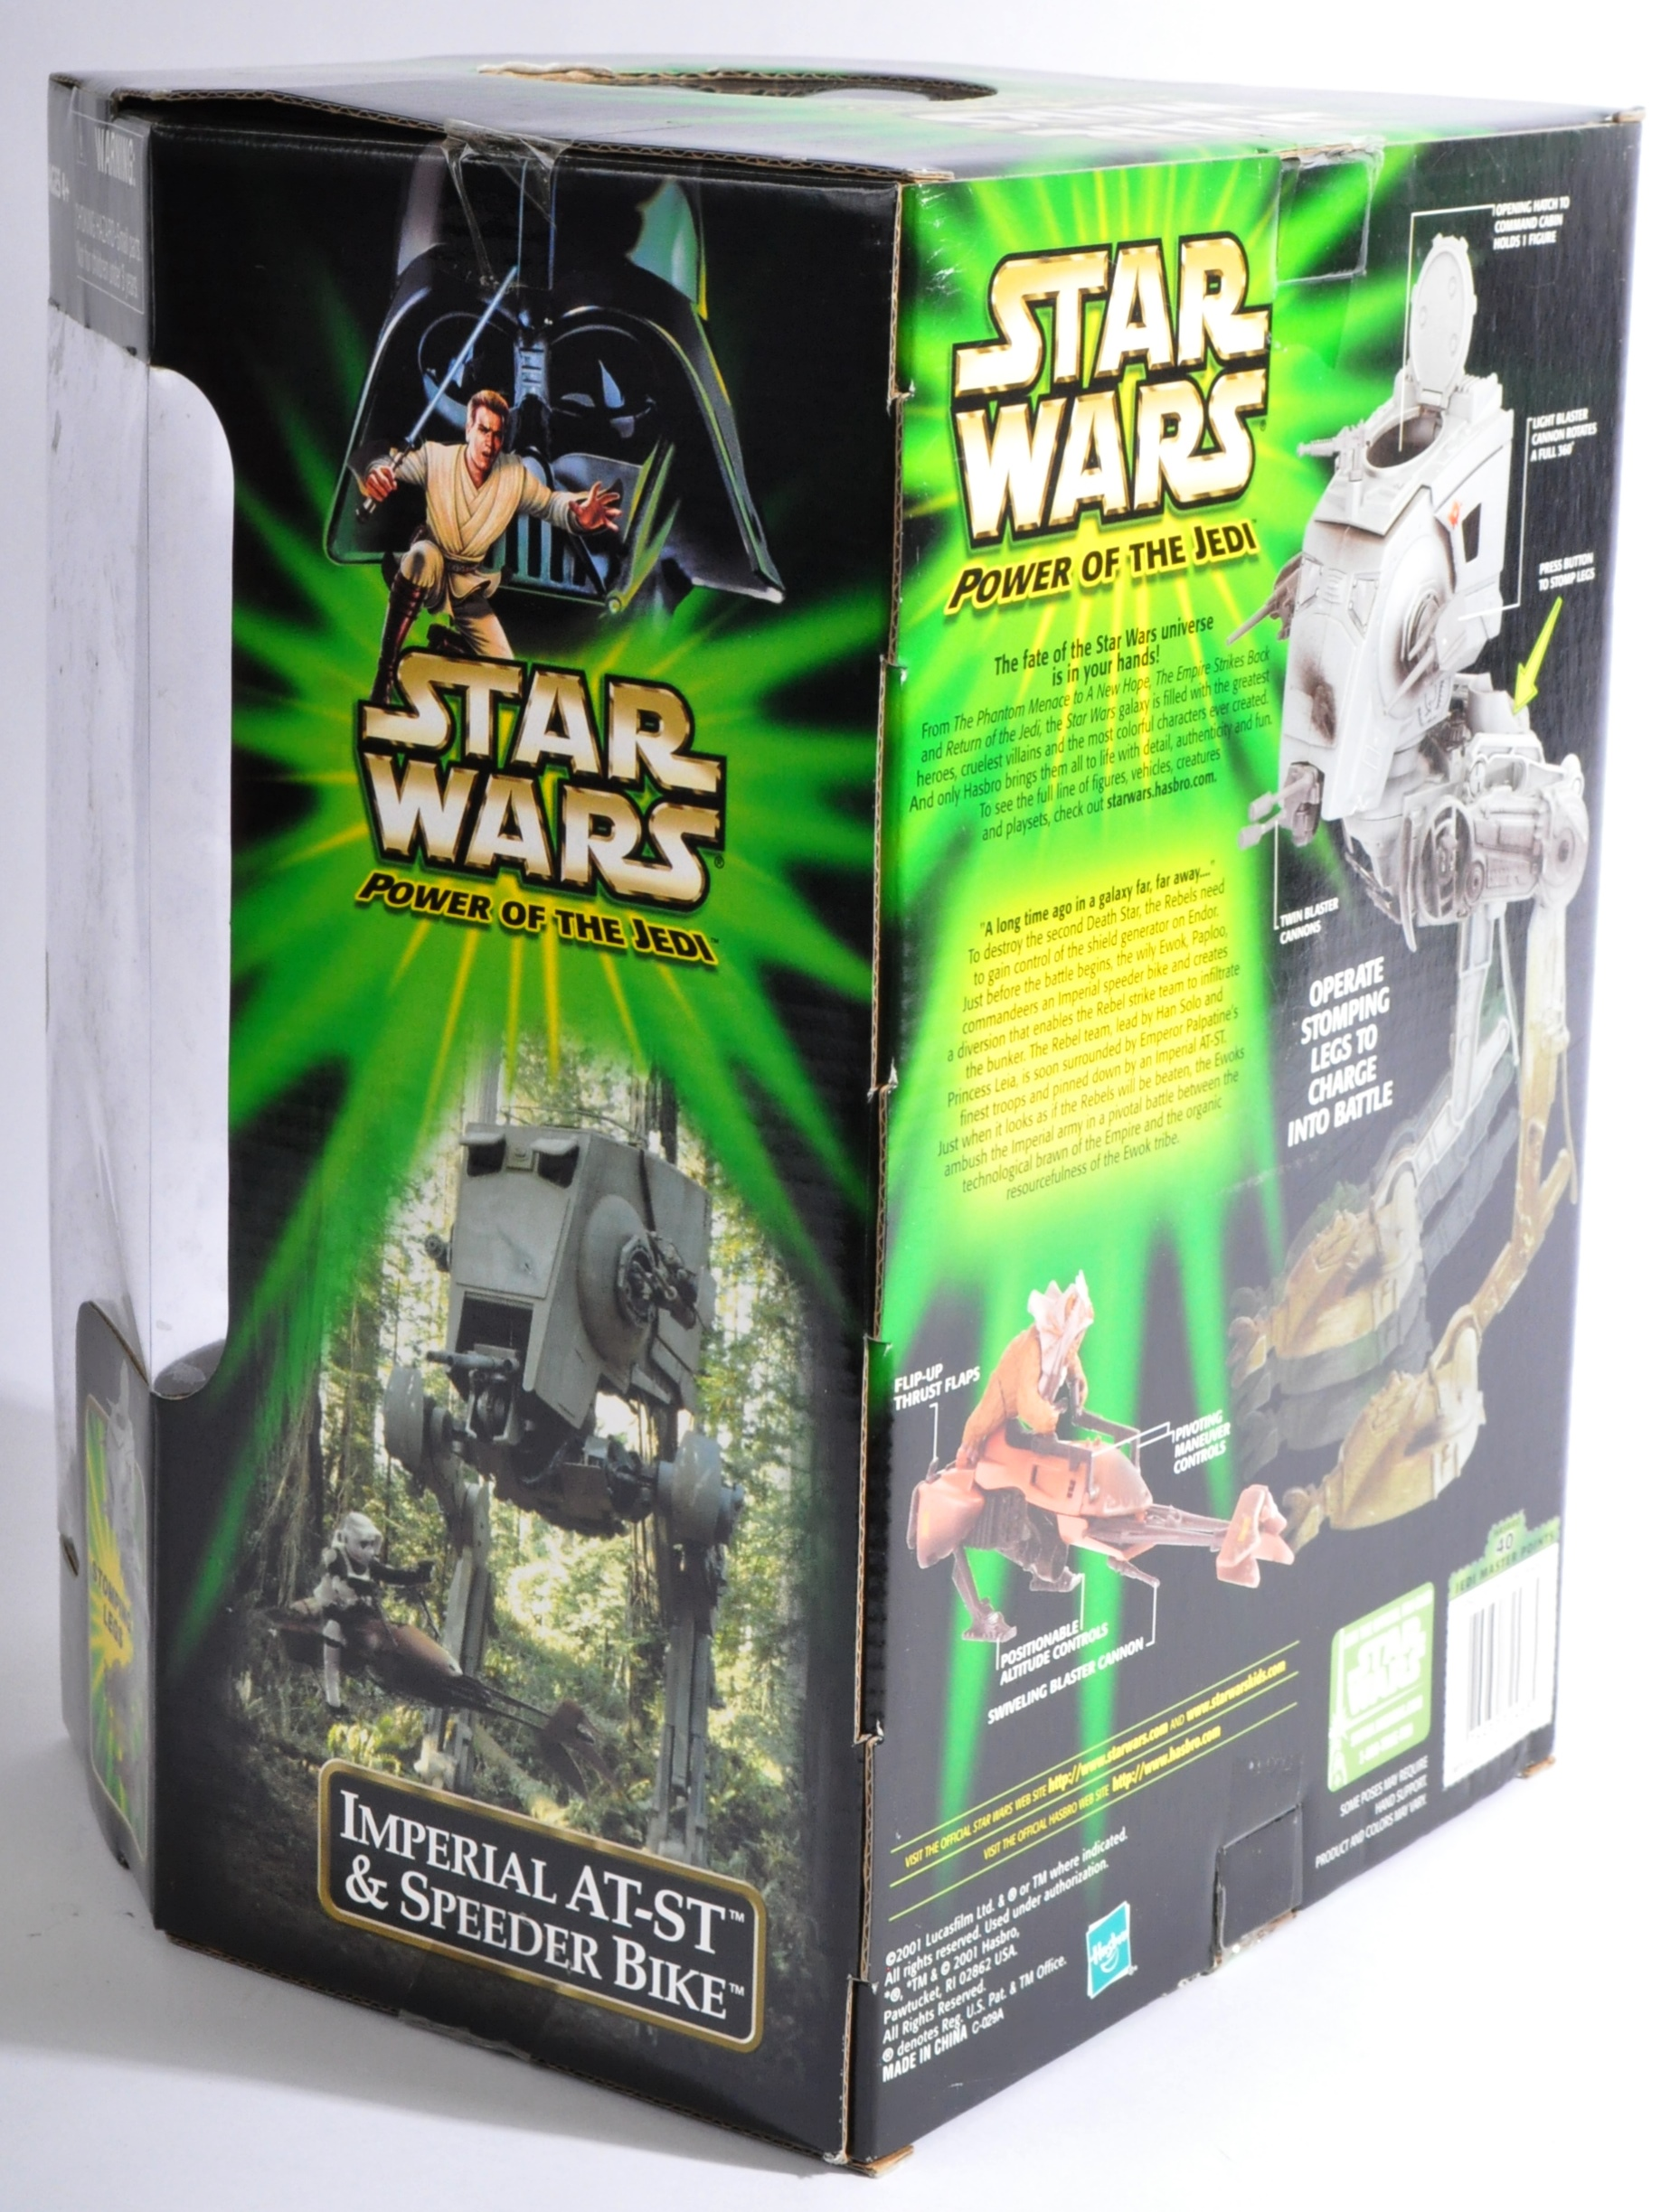 STAR WARS - HASBRO POWER OF THE JEDI ACTION FIGURE PLAYSET - Image 2 of 3